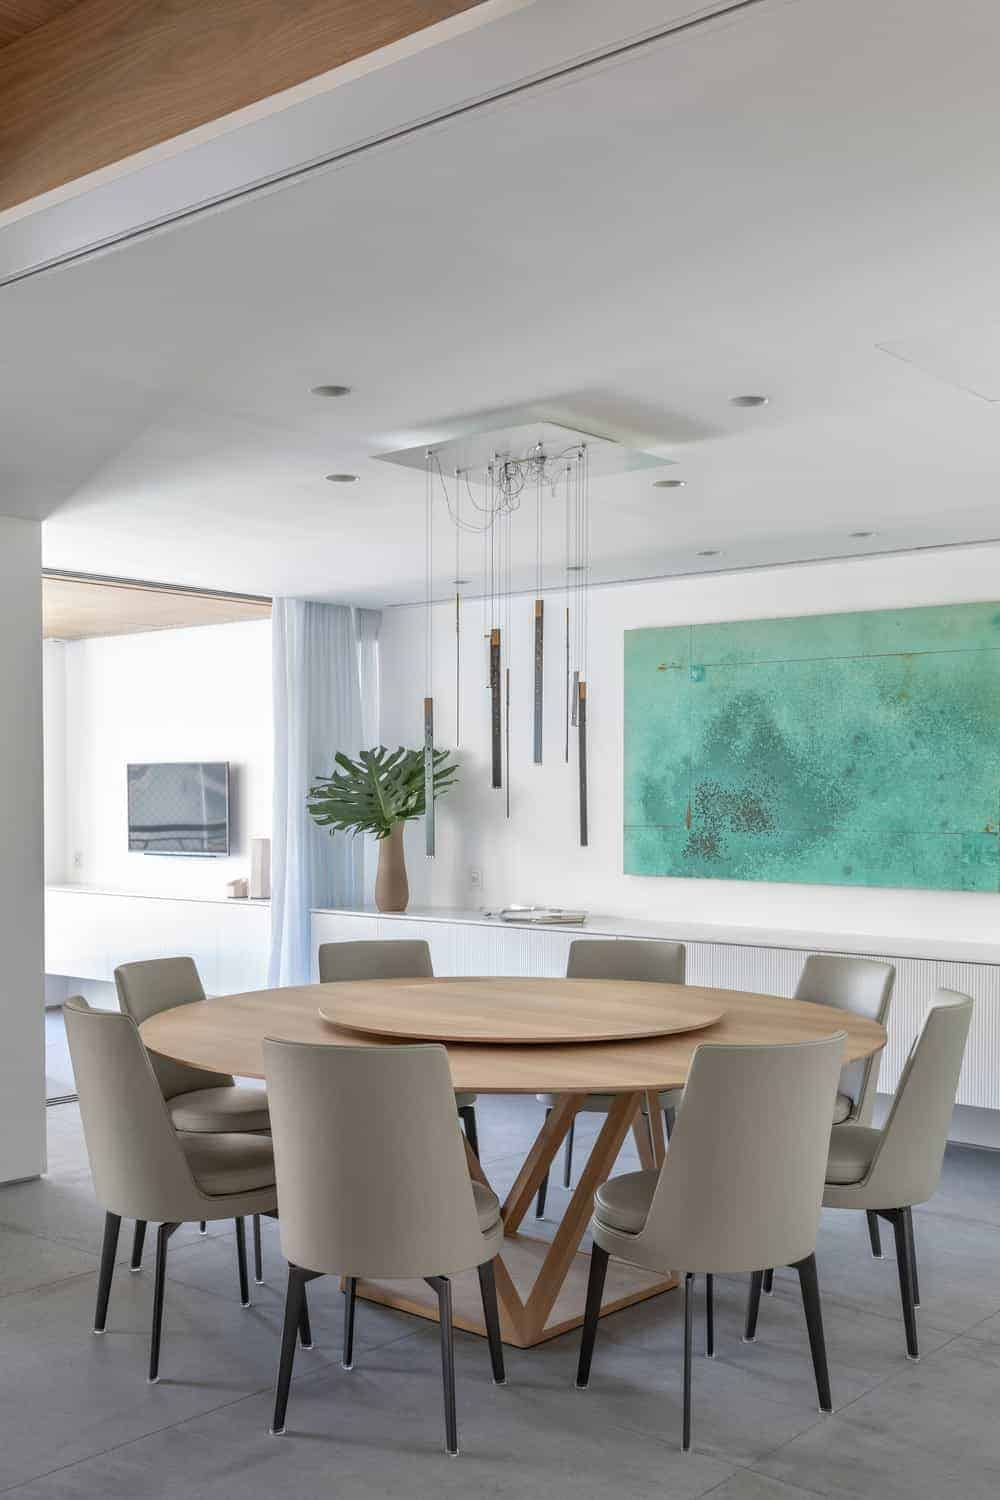 A fresh dining area decorated with an abstract painting, a lovely vase and sleek pendants hanging over the round dining table. It has concrete tiled flooring and a regular white ceiling fitted with recessed lights.